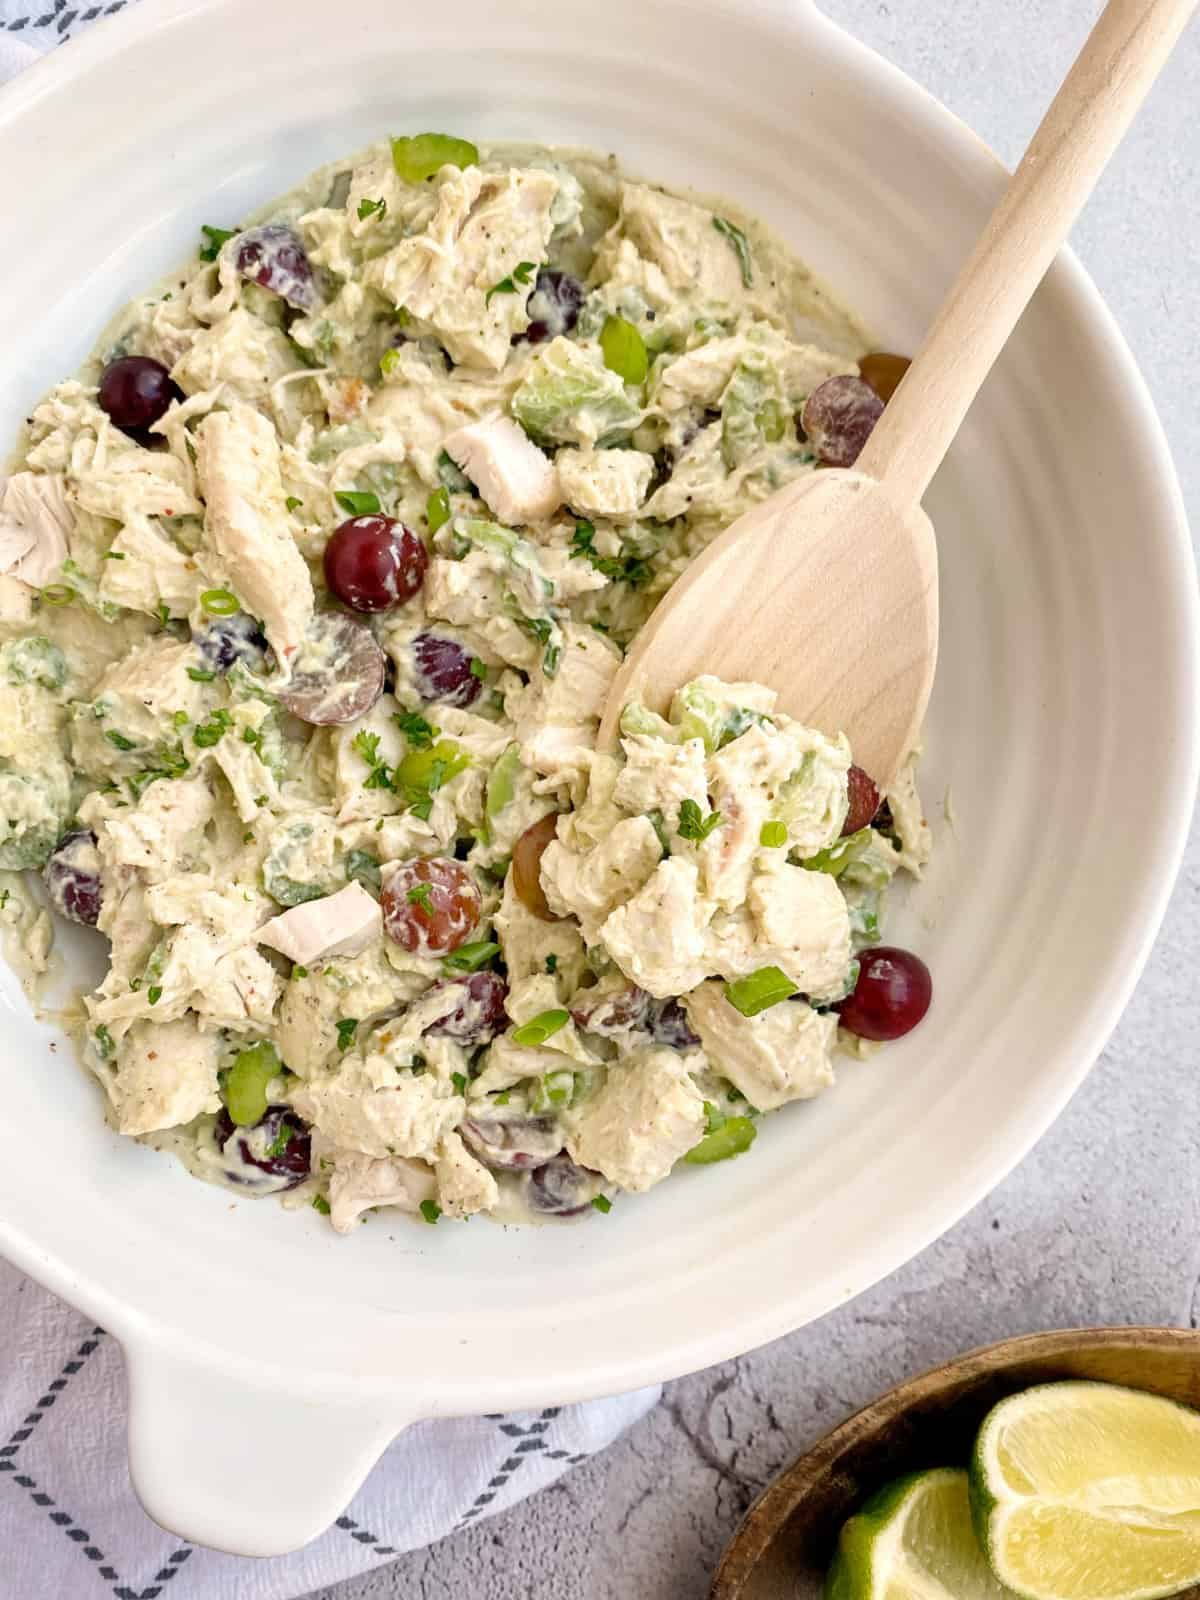 chicken avocado salad with woode n spoon